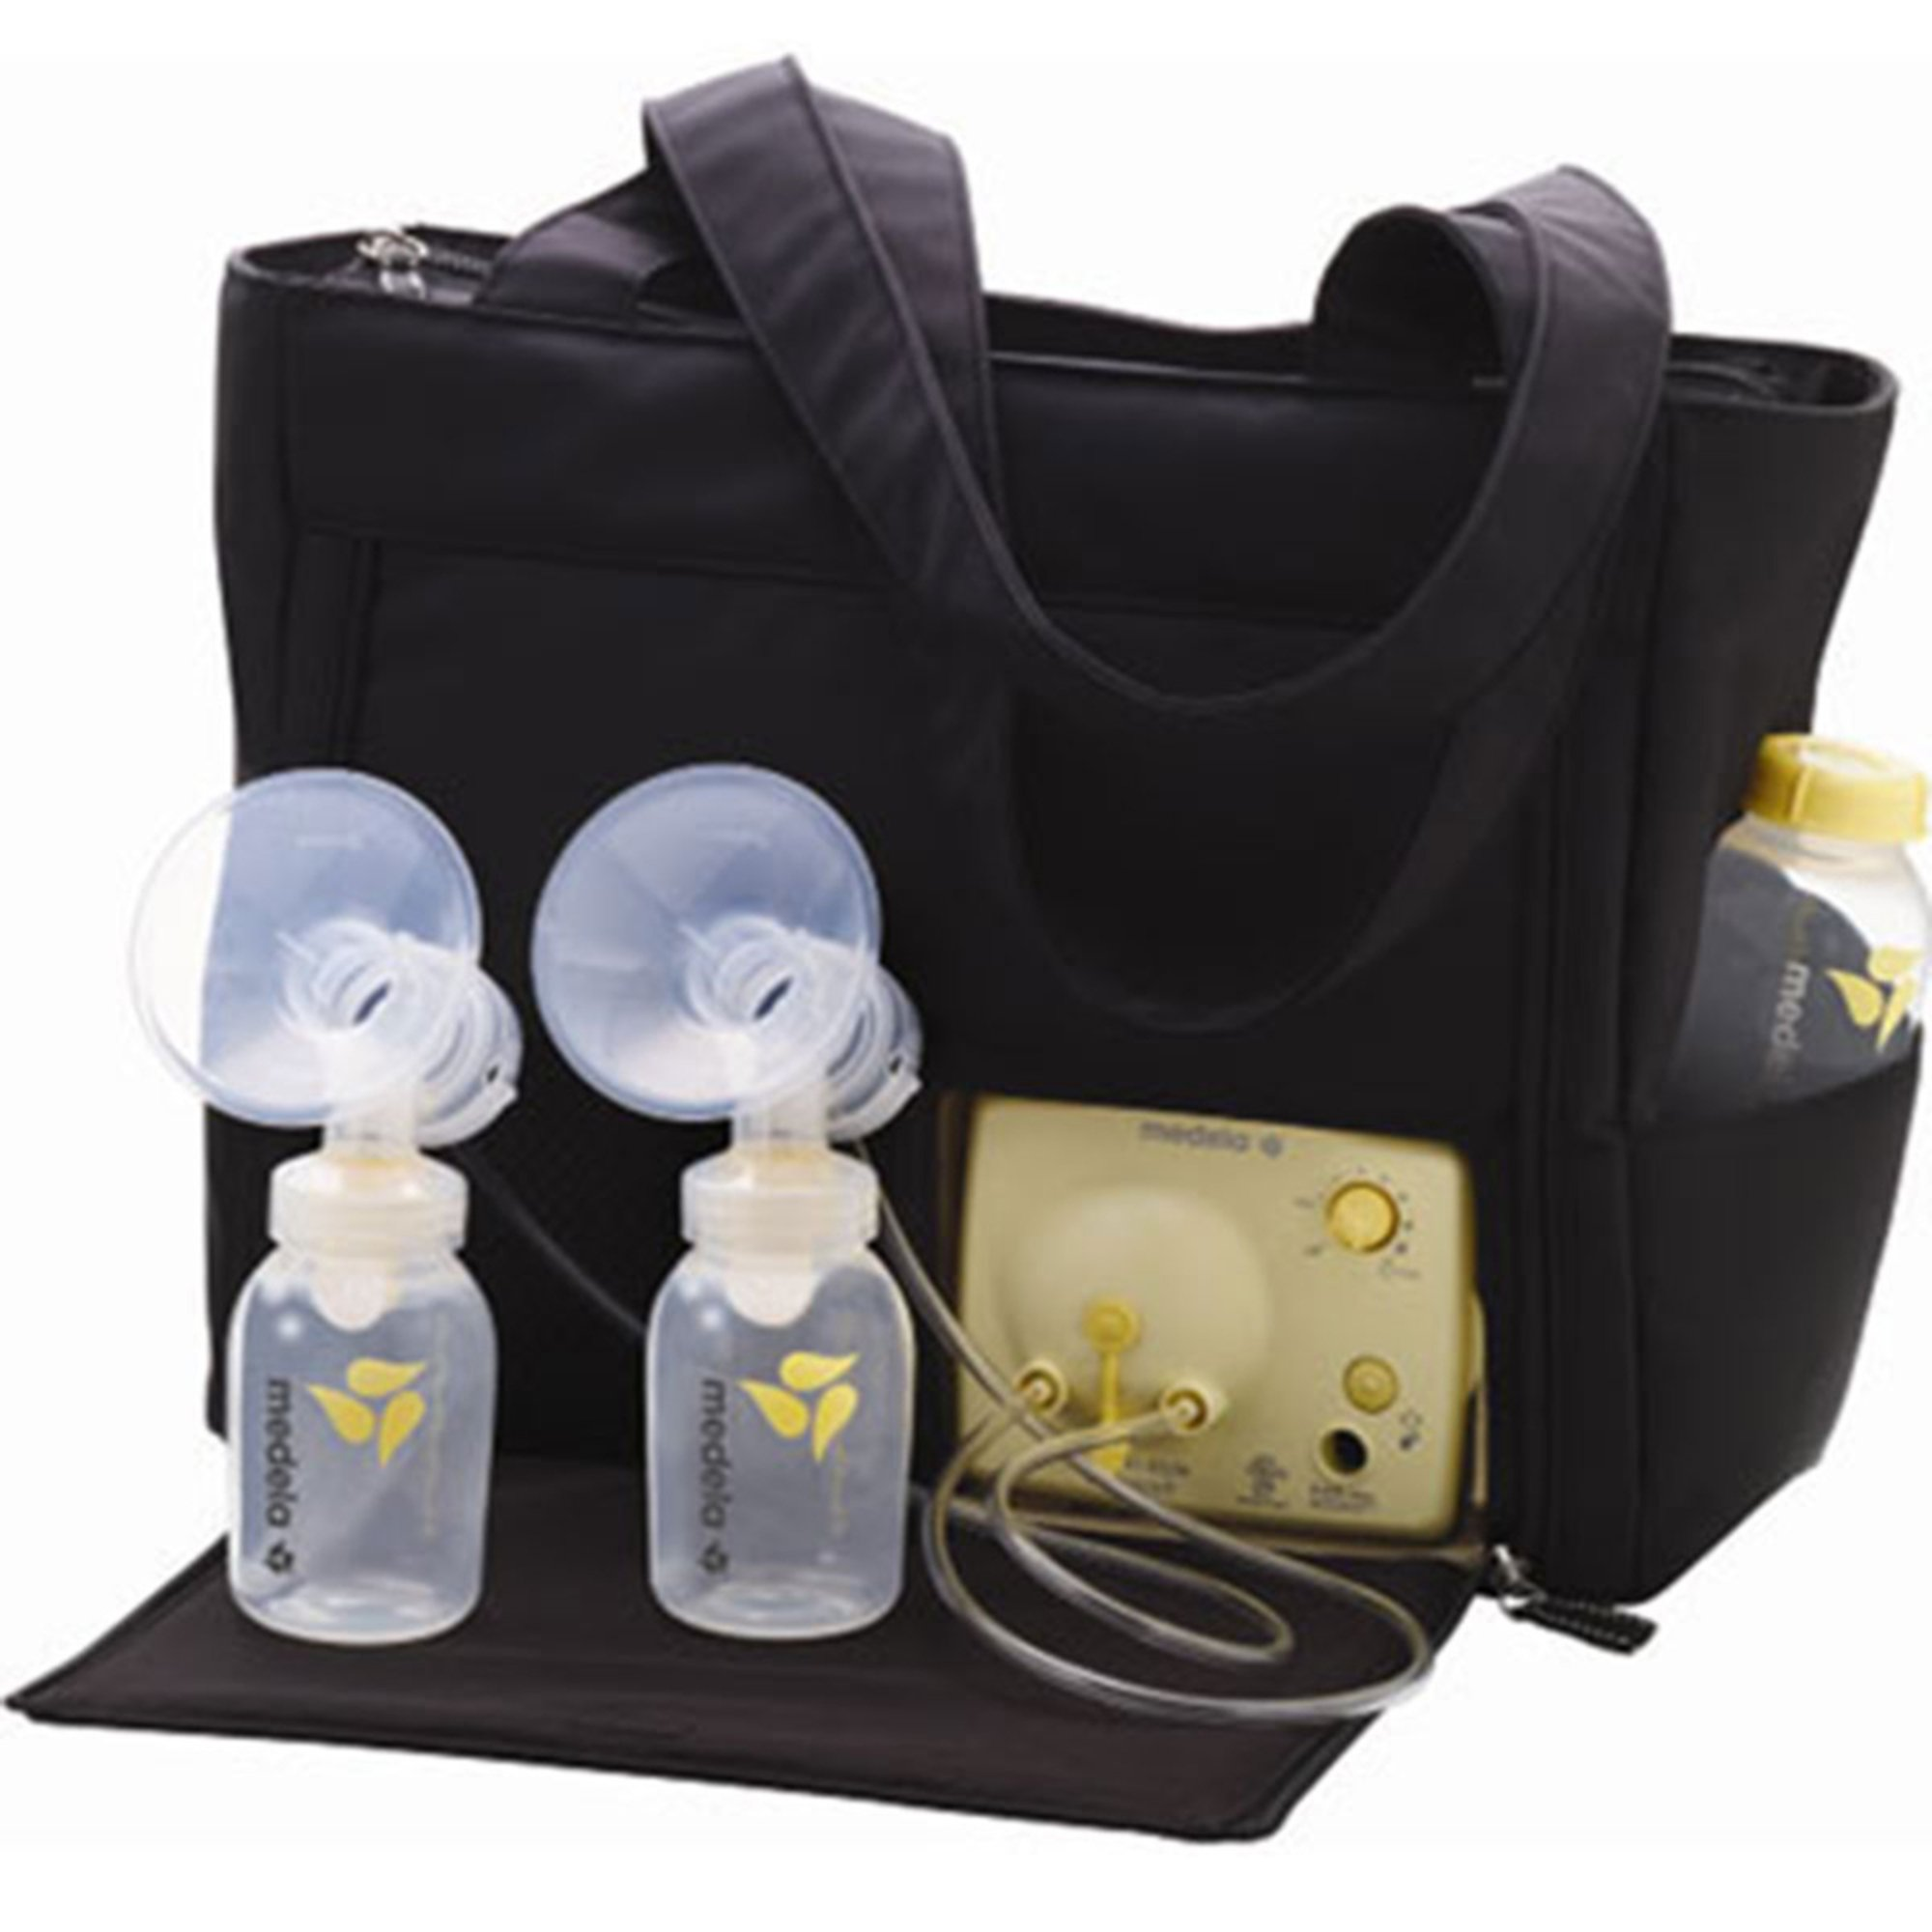 Medela Pump In Style Advanced T On The Go Tote Pumps Baby Kids Toys Your Navy Exchange Official Site